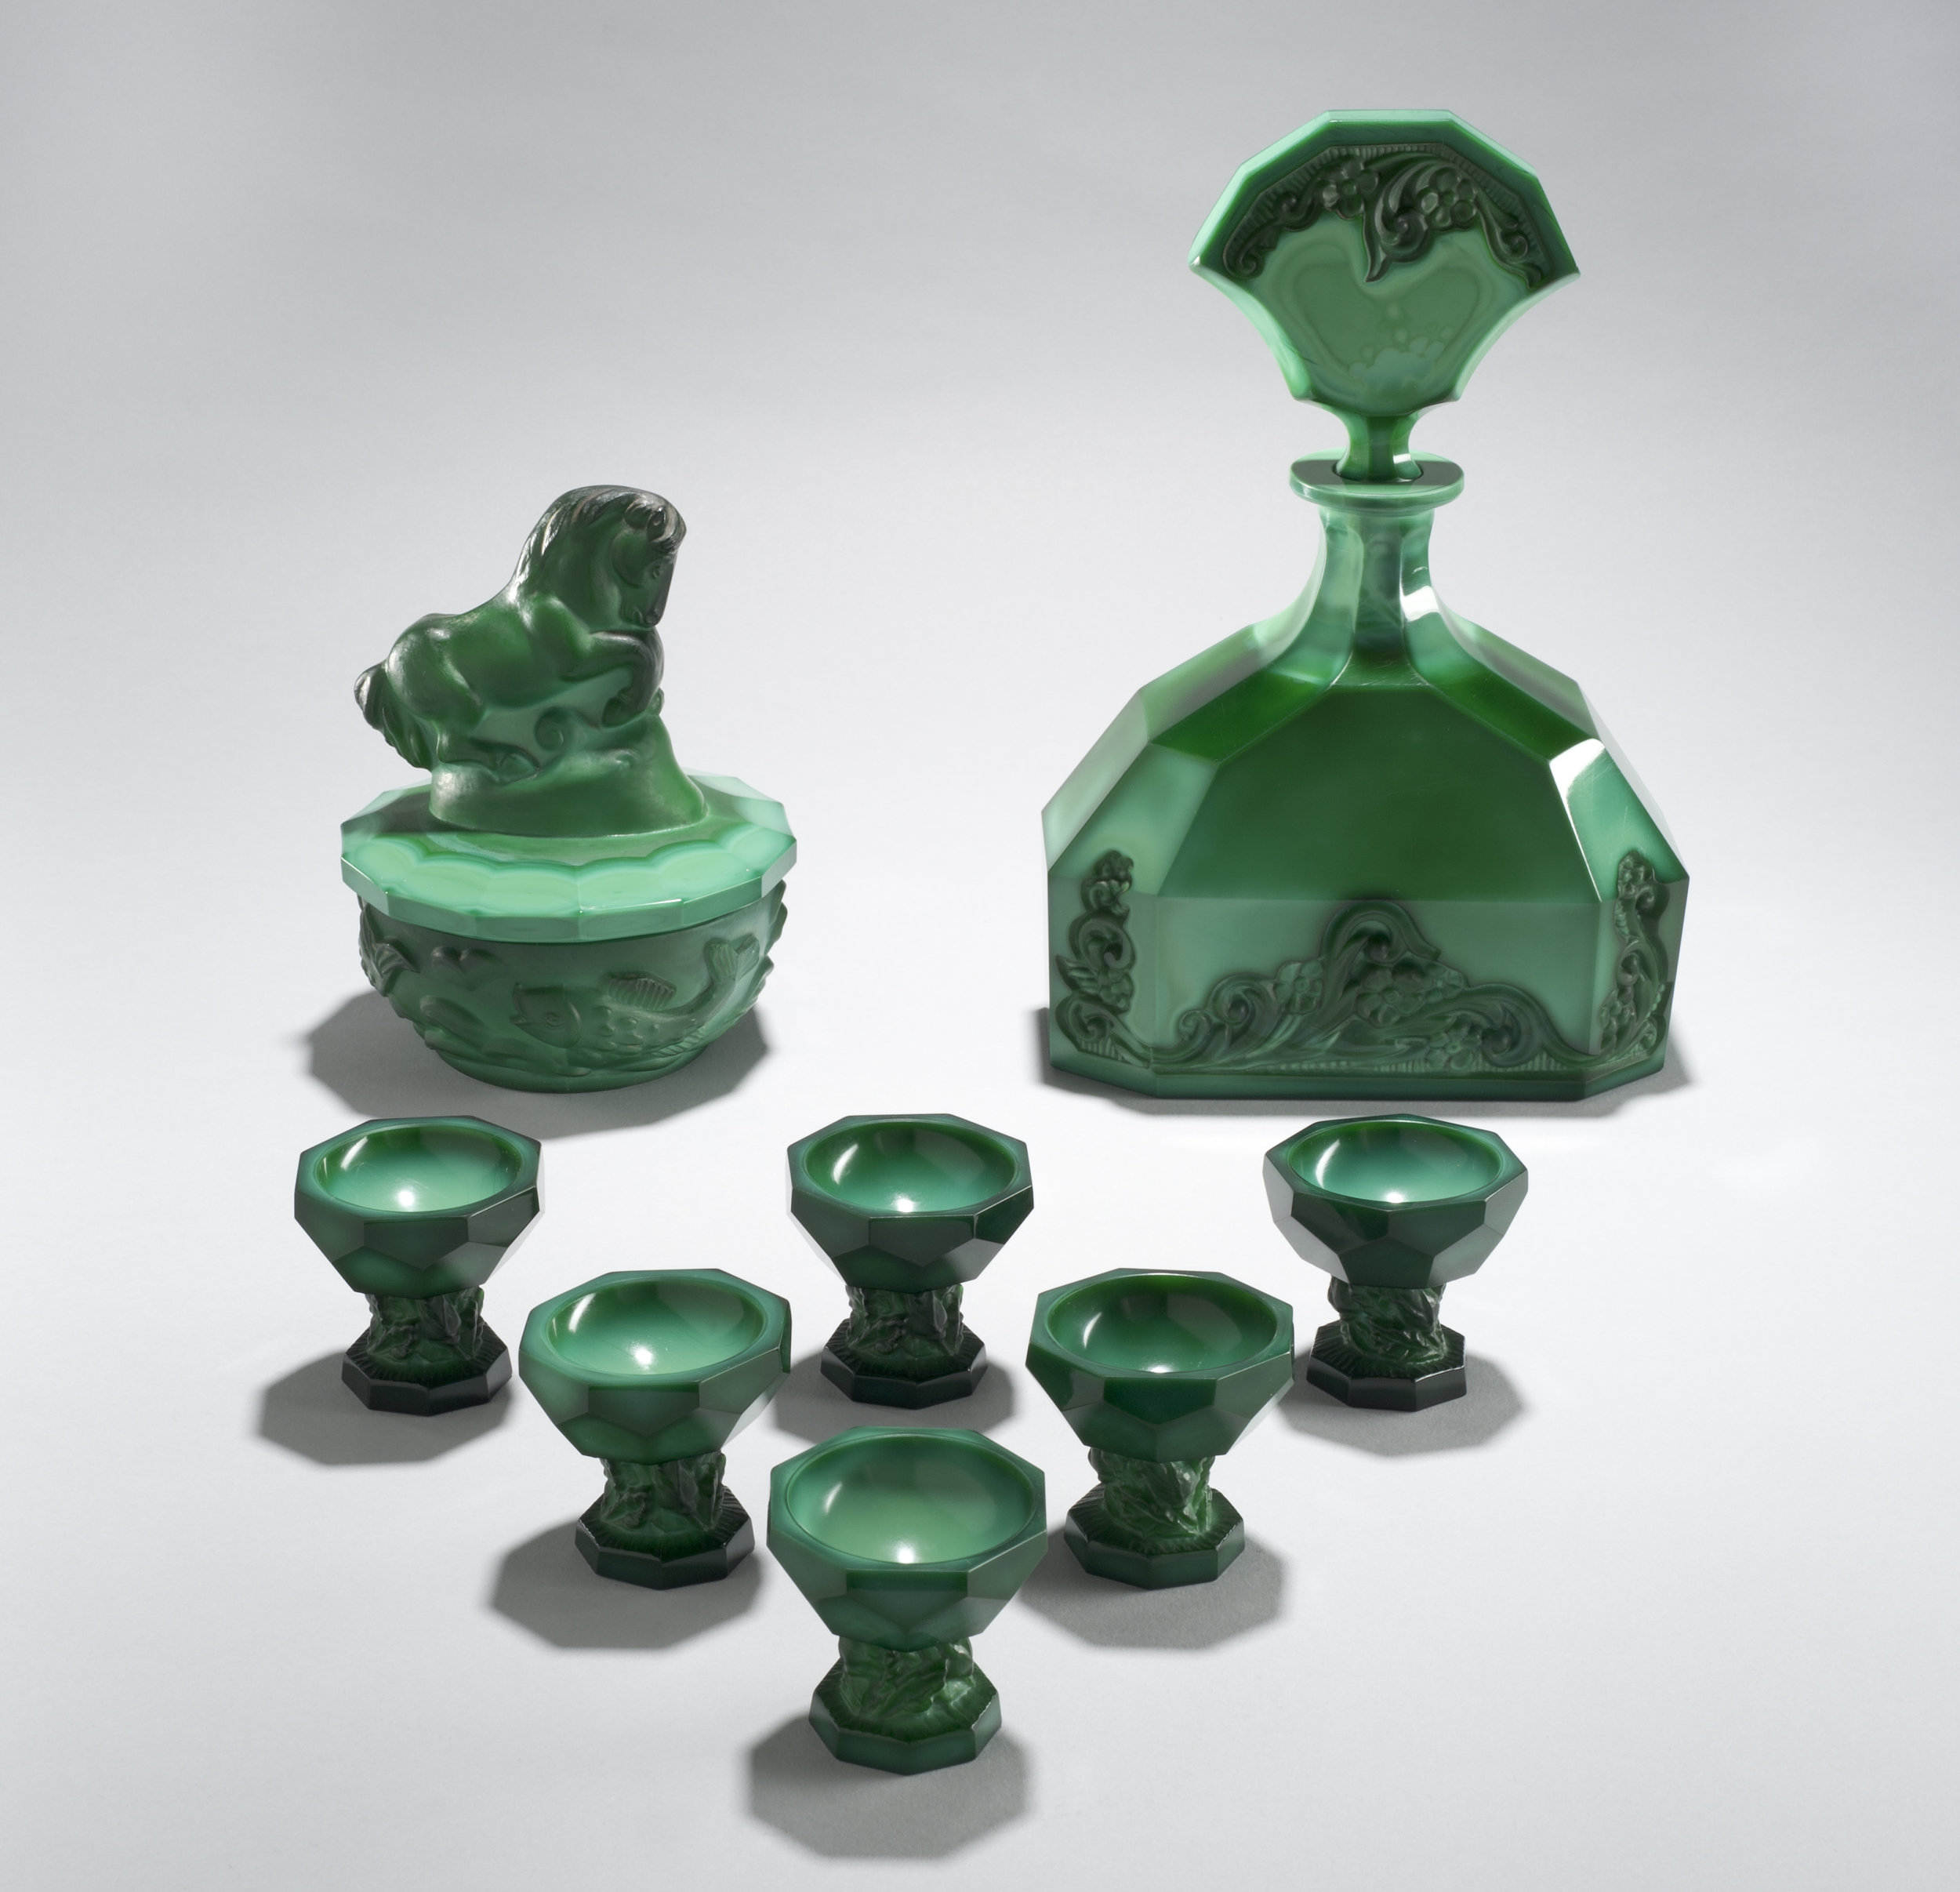 Possibly František Halama (Czech, 1913-1976). Horse Handle Powder box  and  Lisquor Set,  circa 1939.Malachite glass, pressed, matte-cut, and polished;11 1/4 x 7 1/2 x 4 in. Collection of Museum of Glass, Tacoma, Washington, from the Ladd and Lydia Straka Loss Memorial Collection.